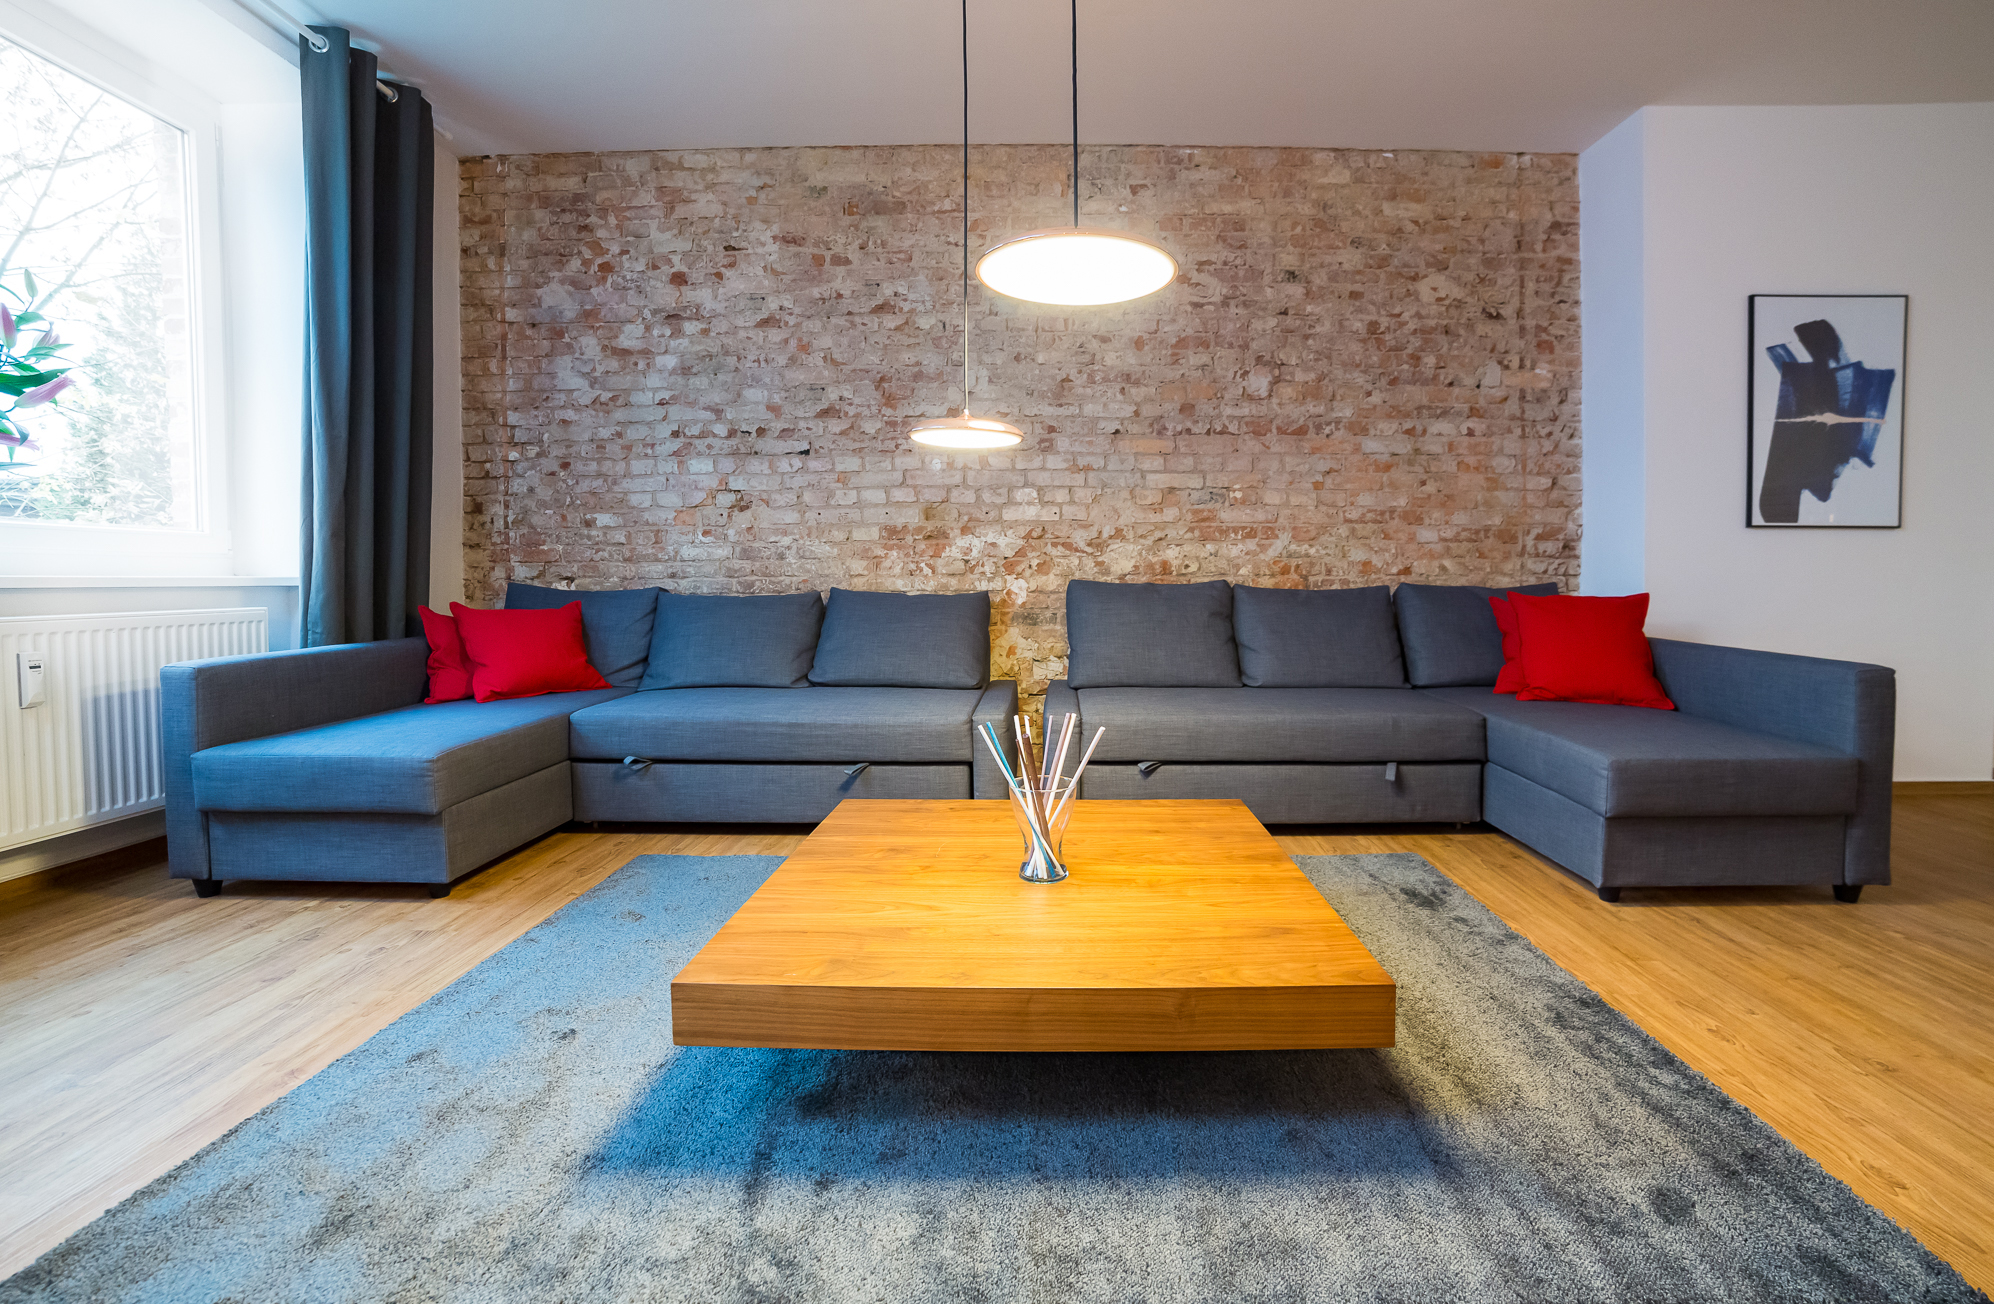 Premium Loft Apartment 150sqm With Terrace Apartments For Rent In Berlin Berlin Germany